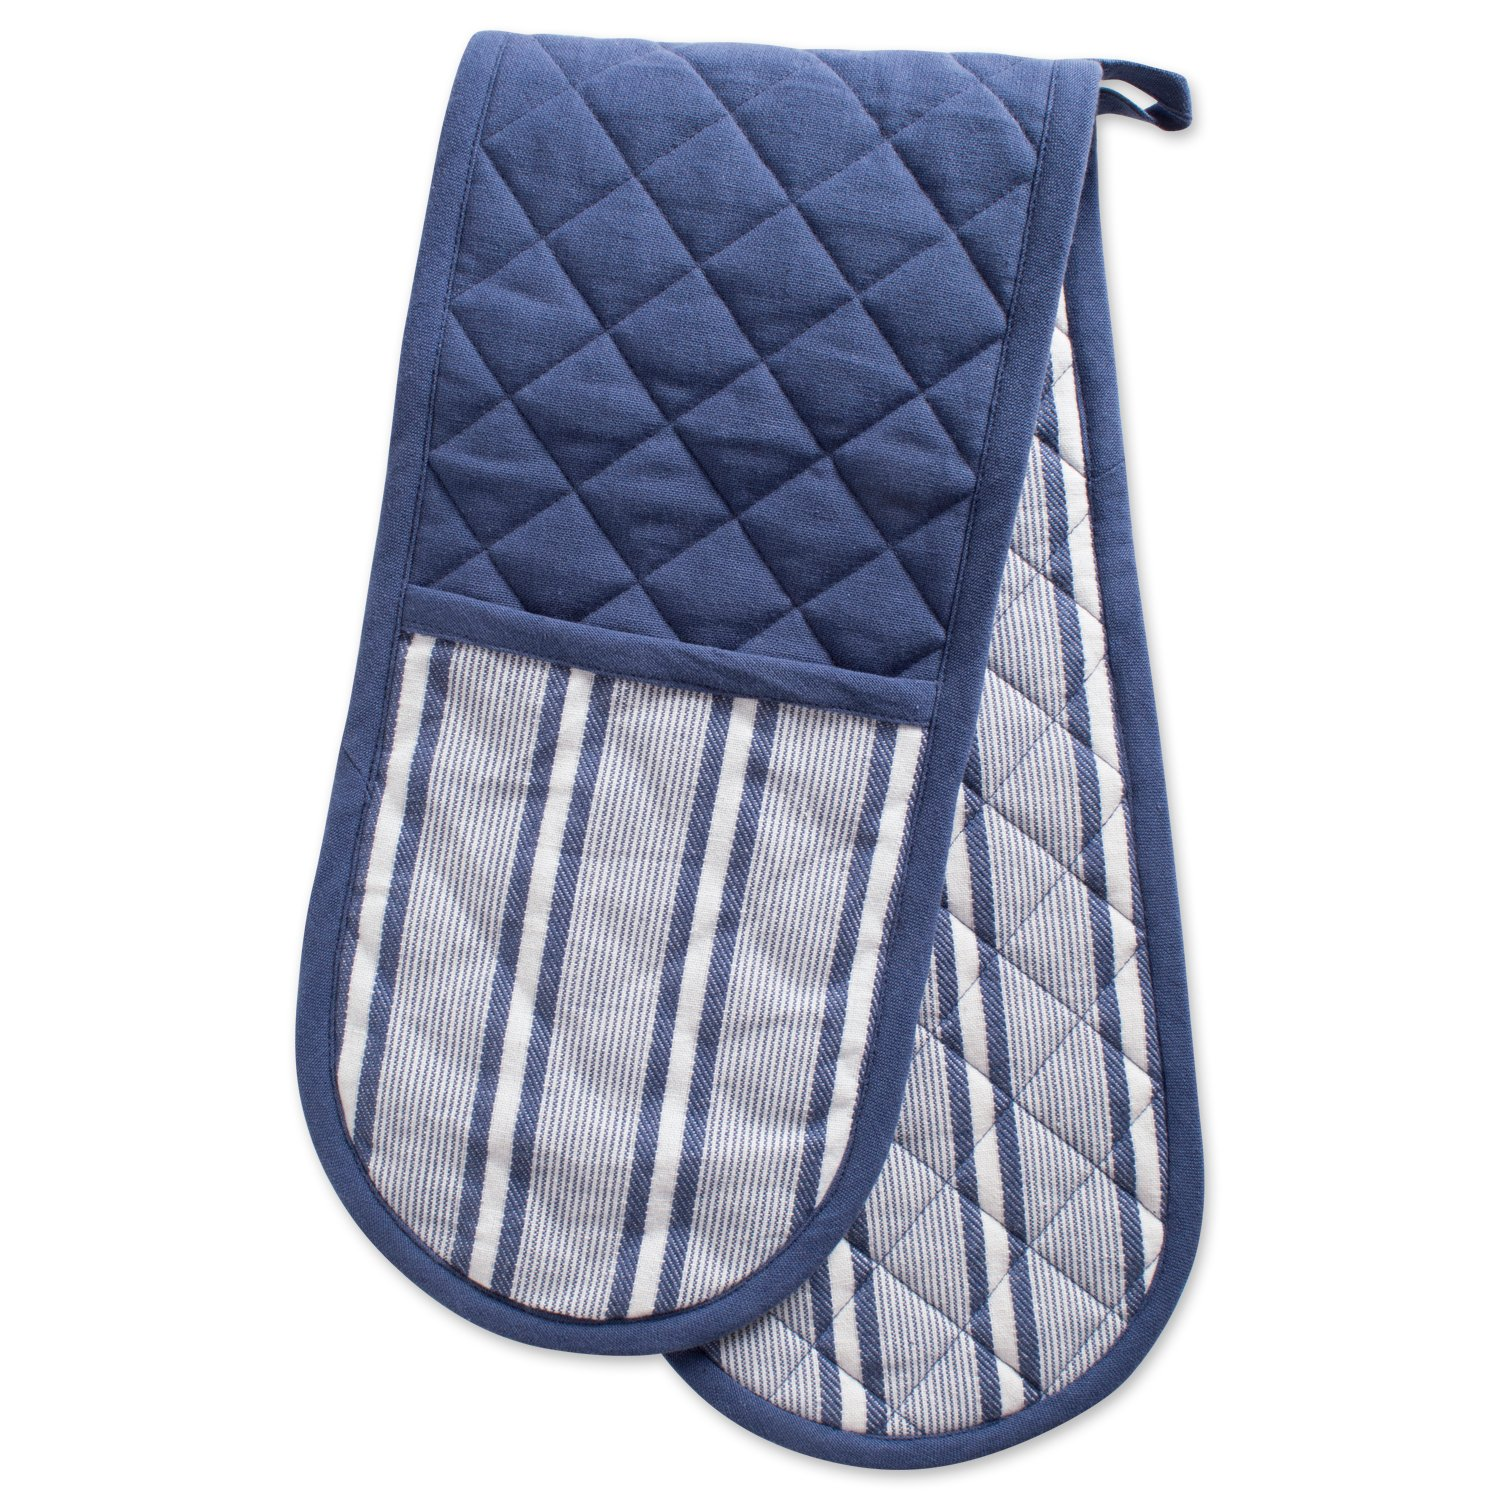 DII Cotton Stripe Quilted Double Oven Mitt, 35 x 7.5, Machine Washable and Heat Resistant Kitchen Moppine for Everyday Cooking and Baking-French Blue by DII